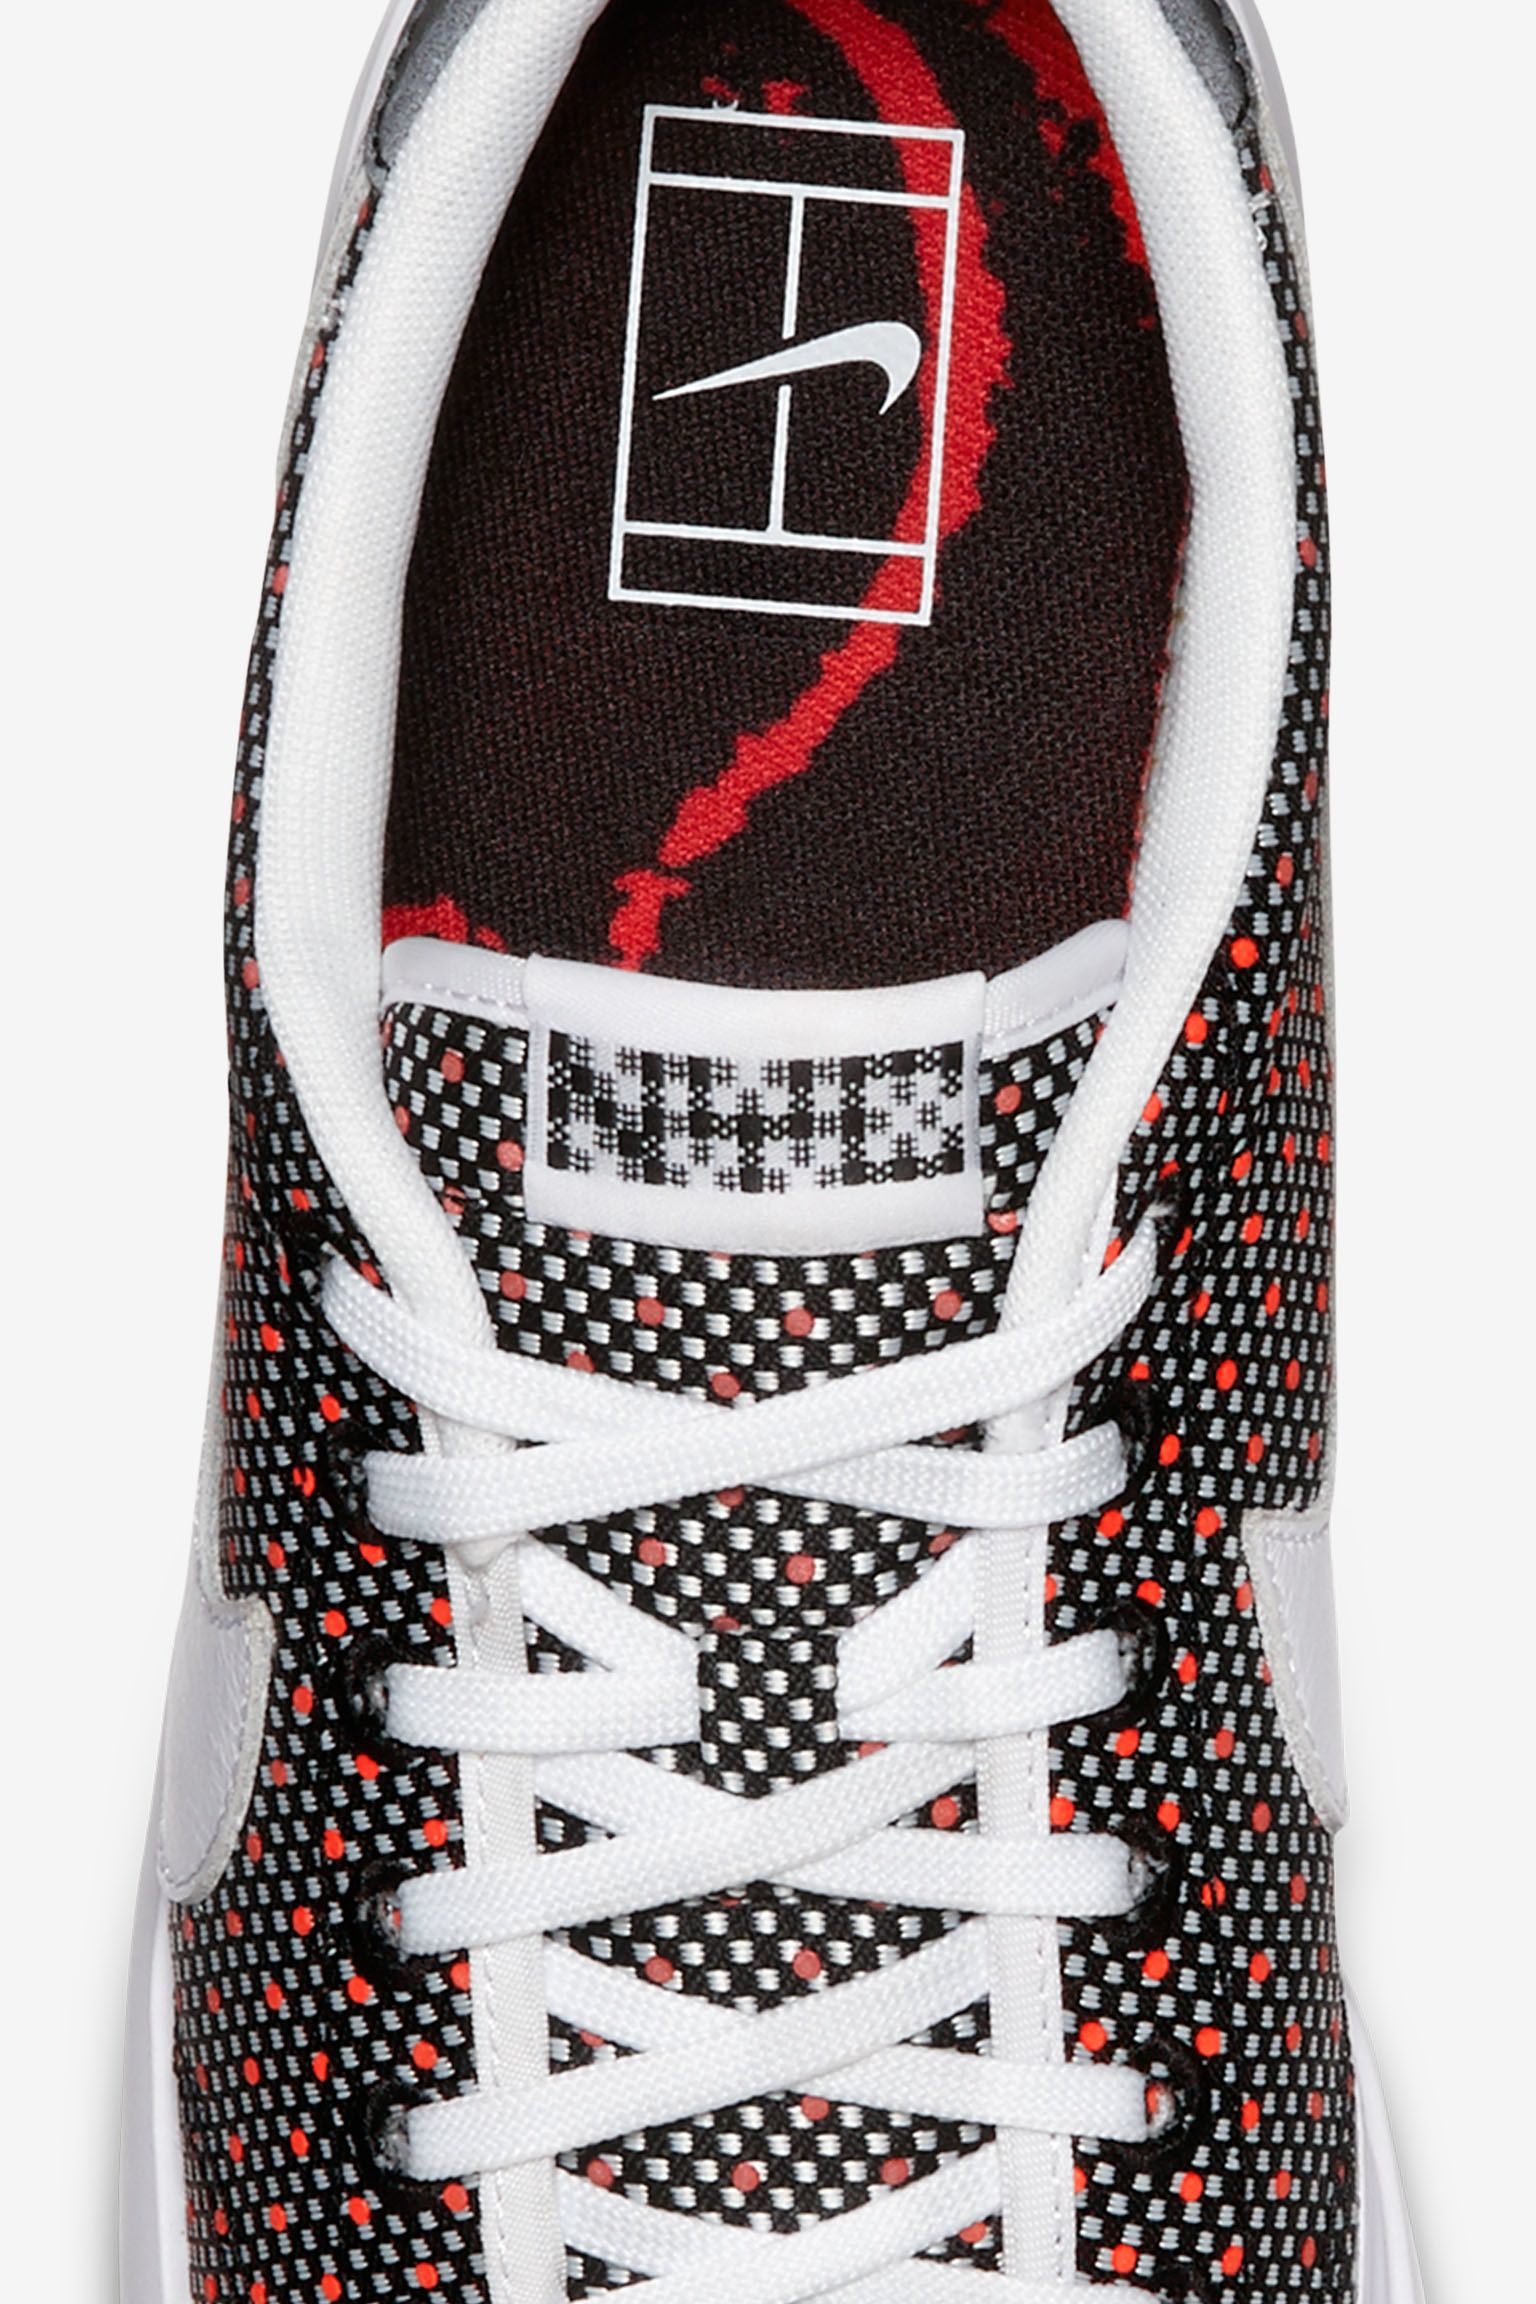 Nike All Court 2 Low Jacquard 'Black & Action Red'